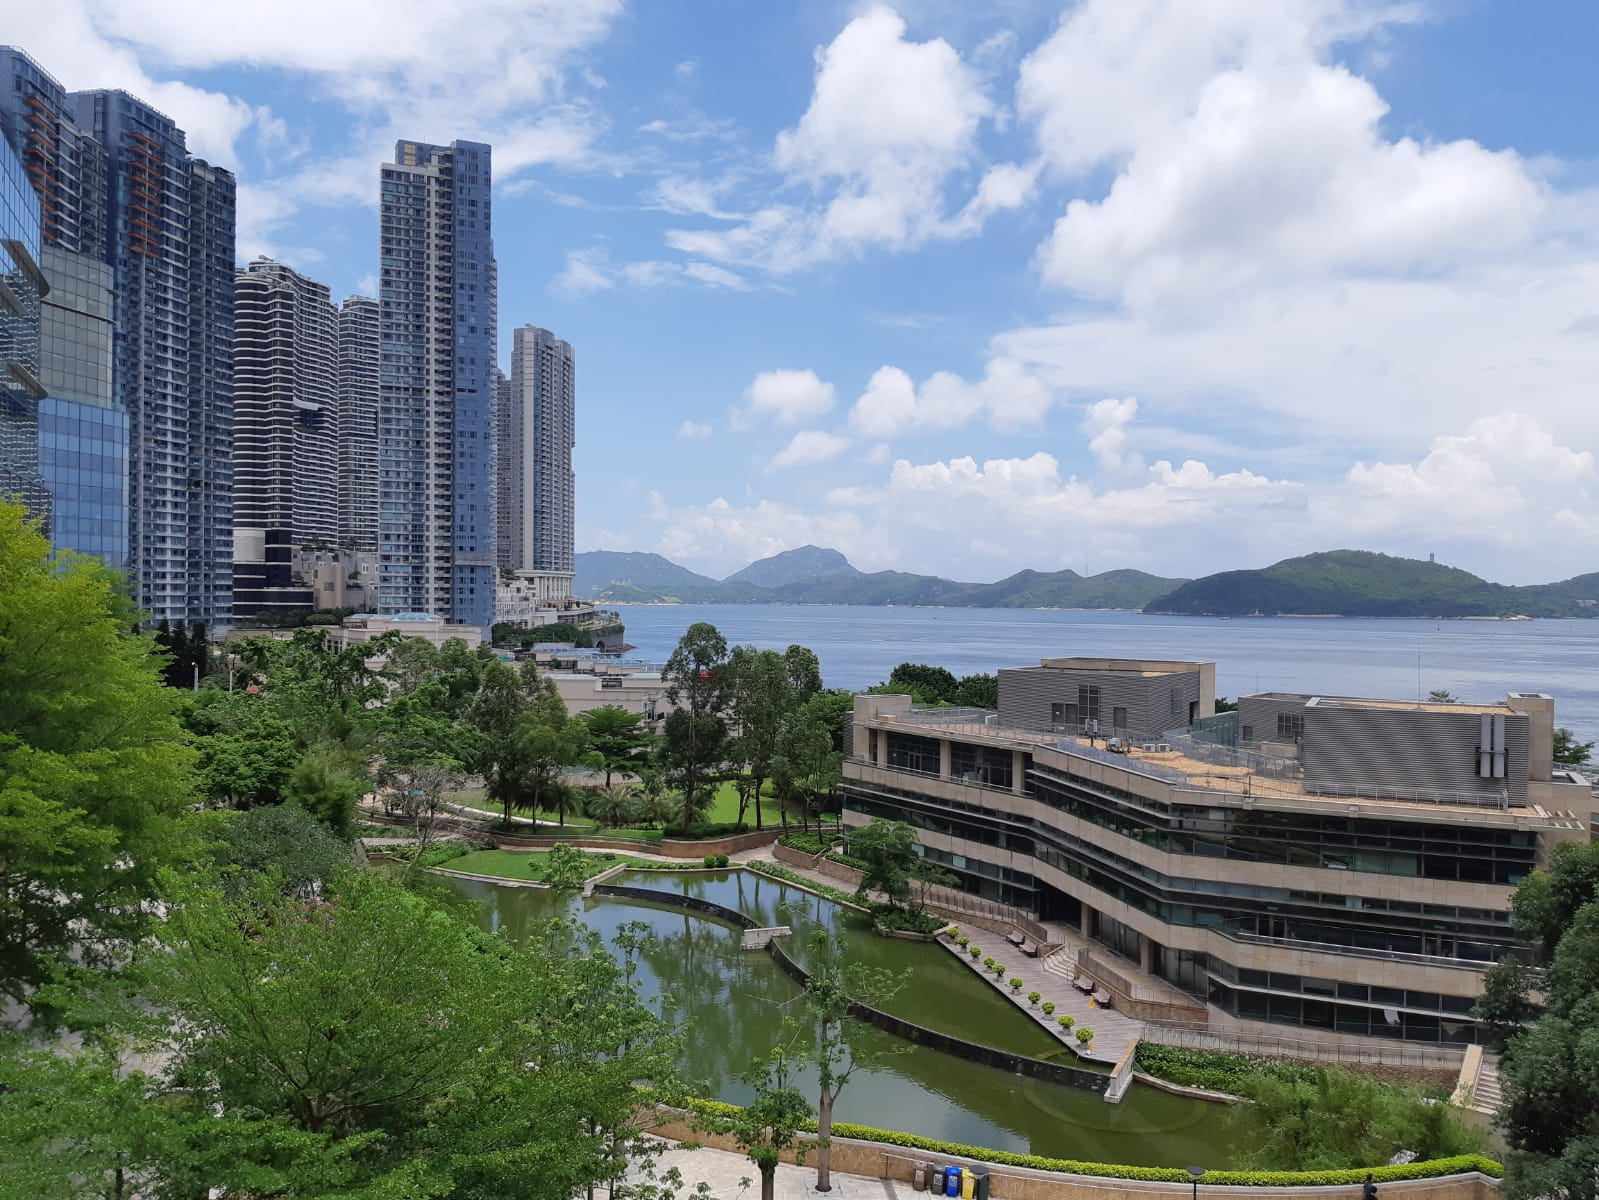 Cyberport's view